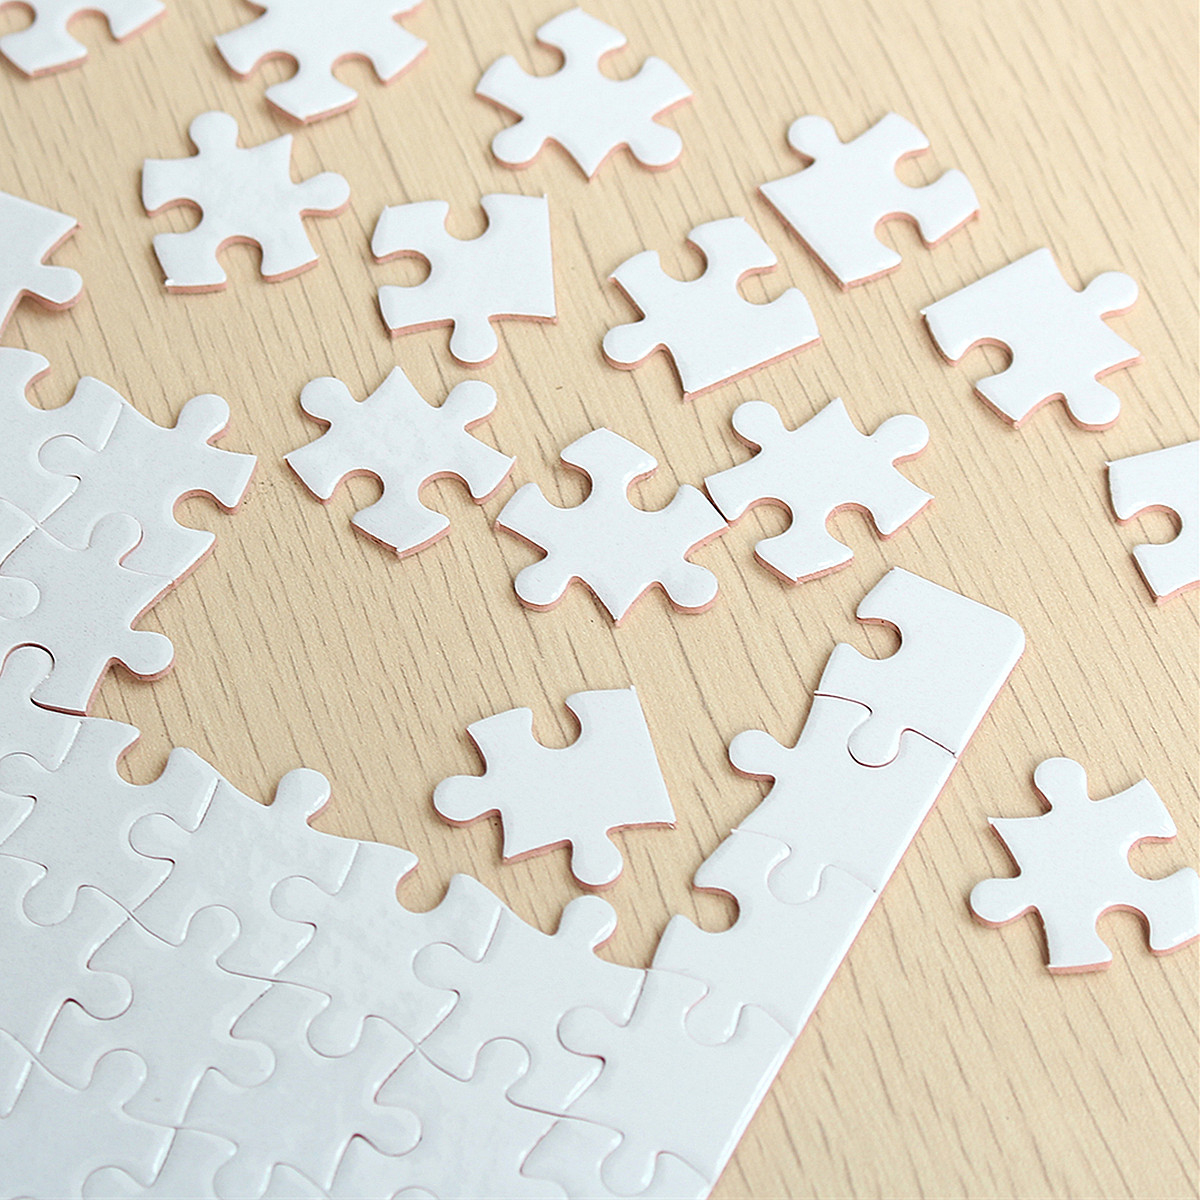 Diy A4 Blank Dye Sublimation Printable Jigsaw Puzzle For Heat Press - Printable Diy Puzzle